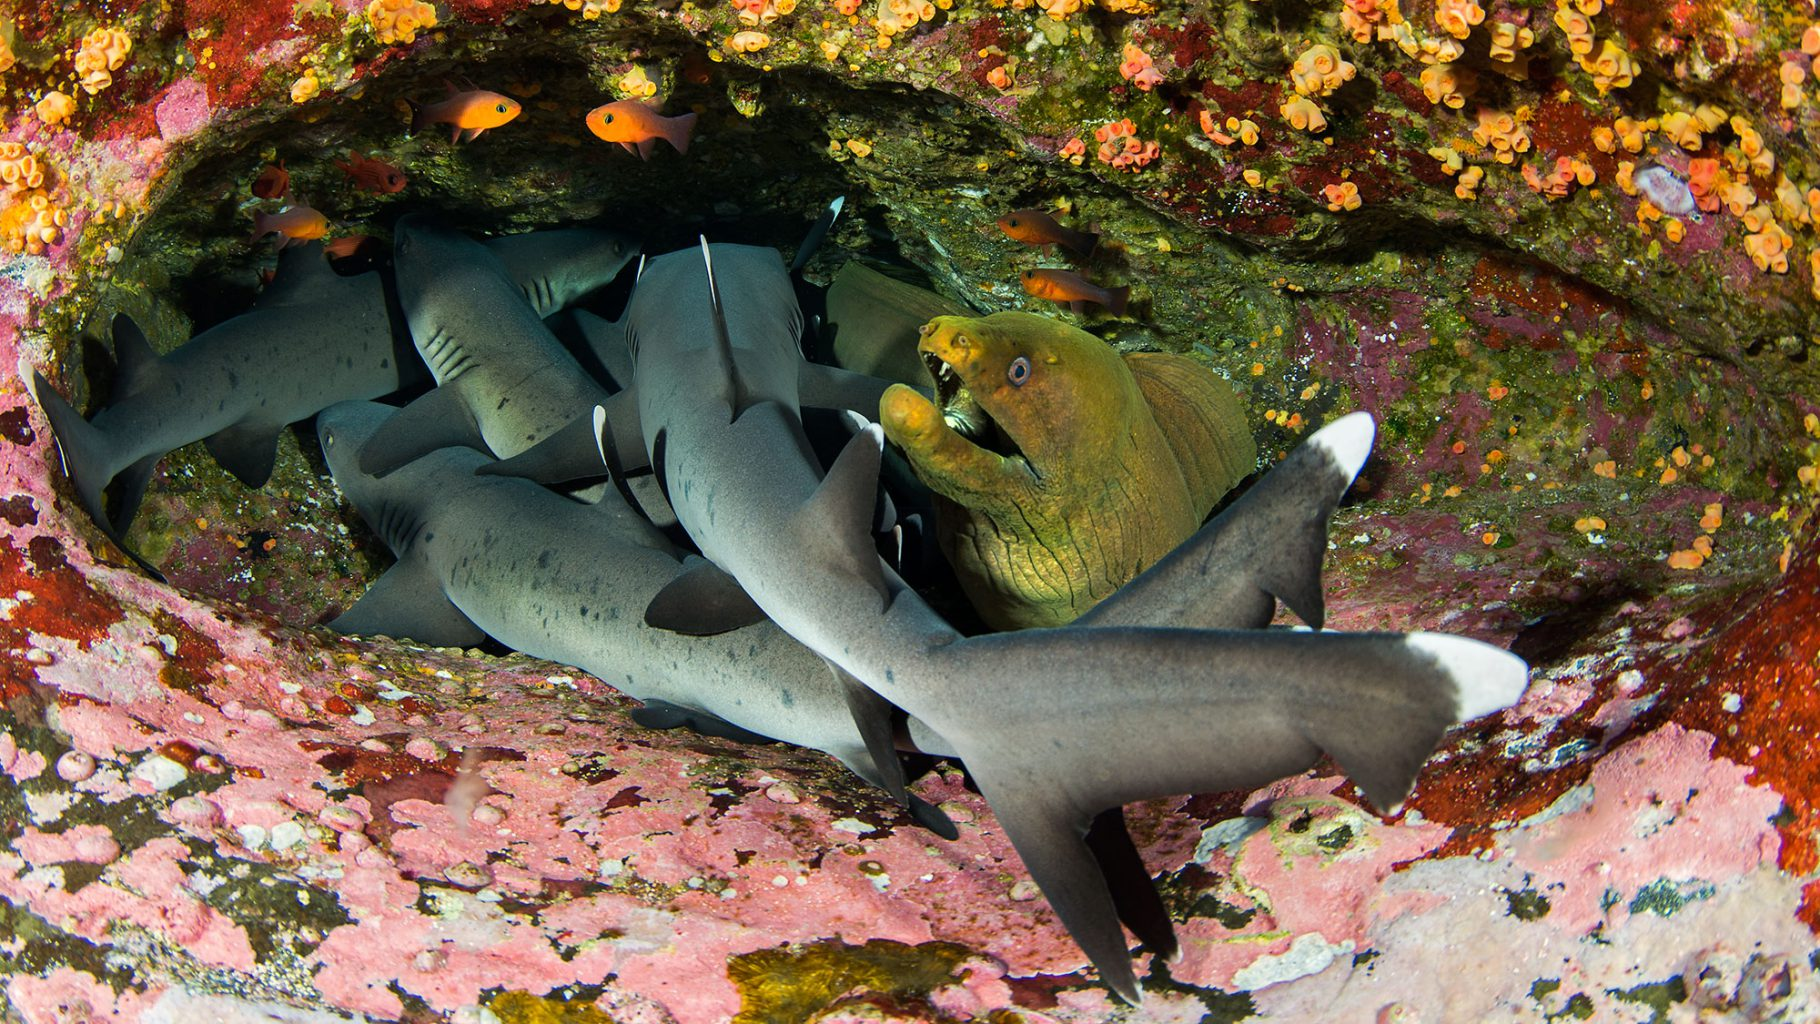 White Reef Sharks and Morey Eel in Cave, Roca Partida Revillagigedo ( Socorro ) Islands, Mexico